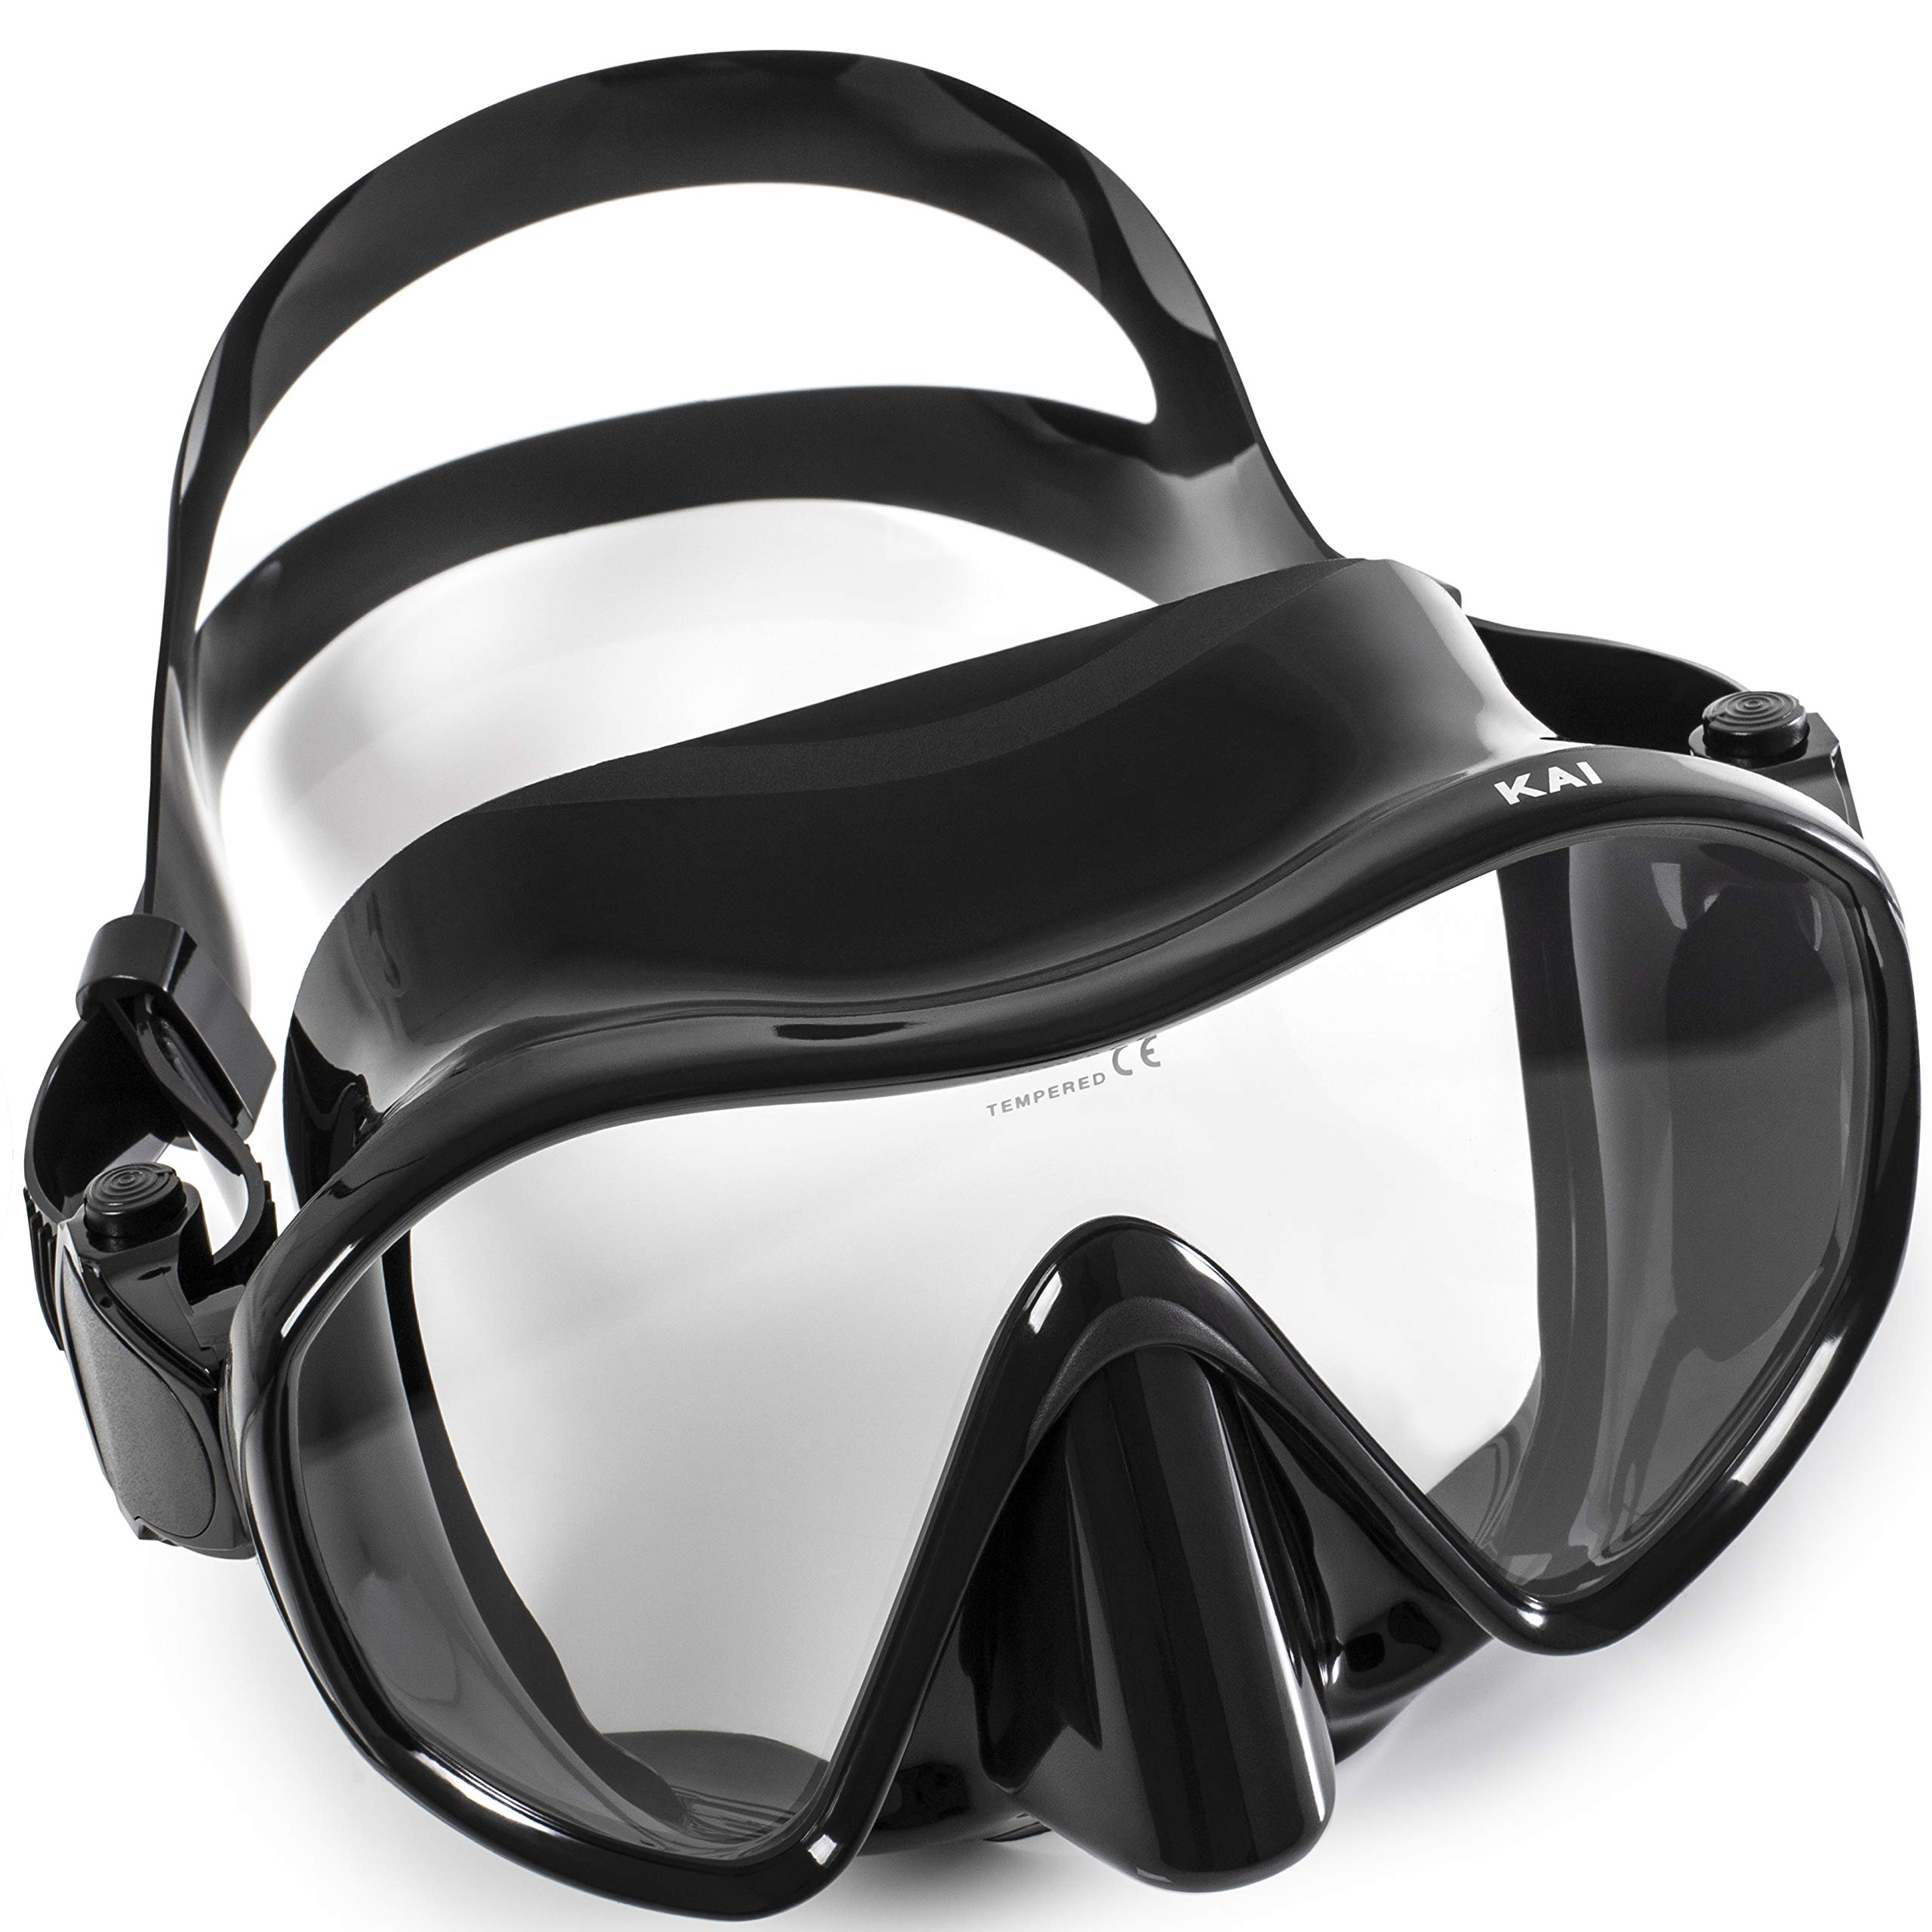 Adventure At Nature Kai Scuba Diving Mask (Adults) Frameless, Form-Fitting Leakproof Seal, Clear HD Lens | Dive Goggles for Snorkeling, Spearfishing, Freediving | Underwater Pool, Ocean by Adventure At Nature